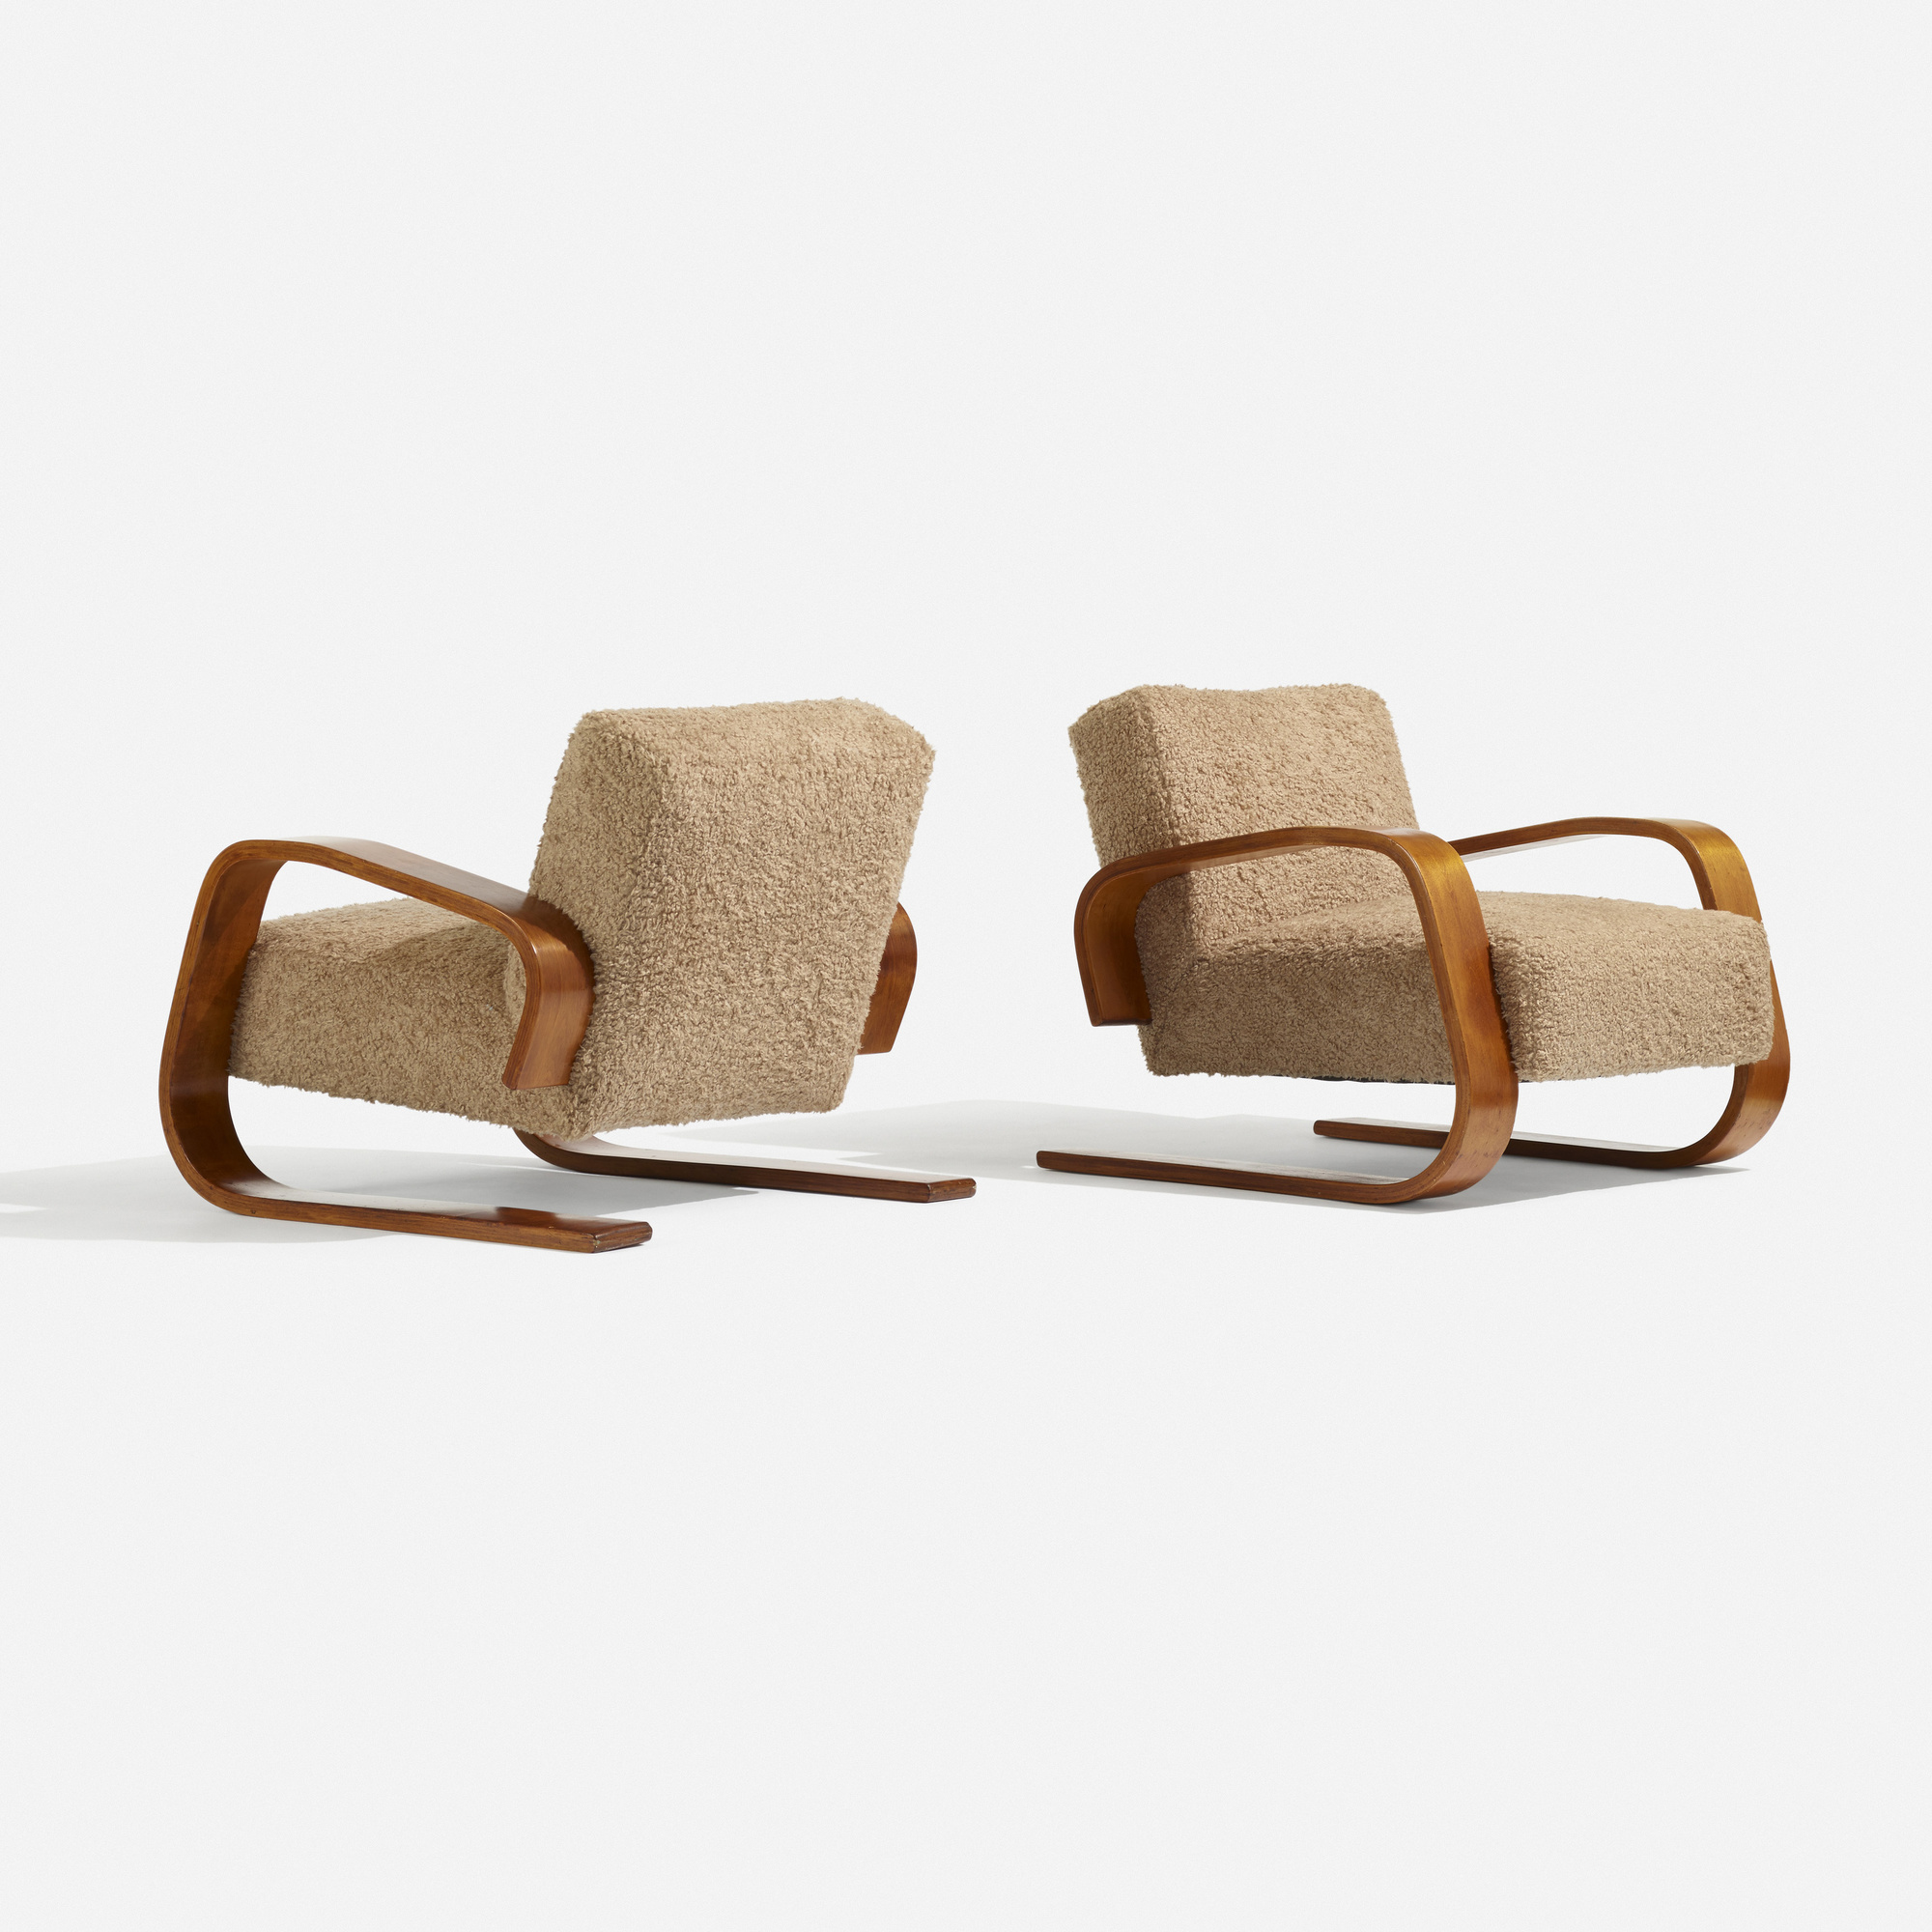 107 ALVAR AALTO Tank lounge chairs model 37400 pair